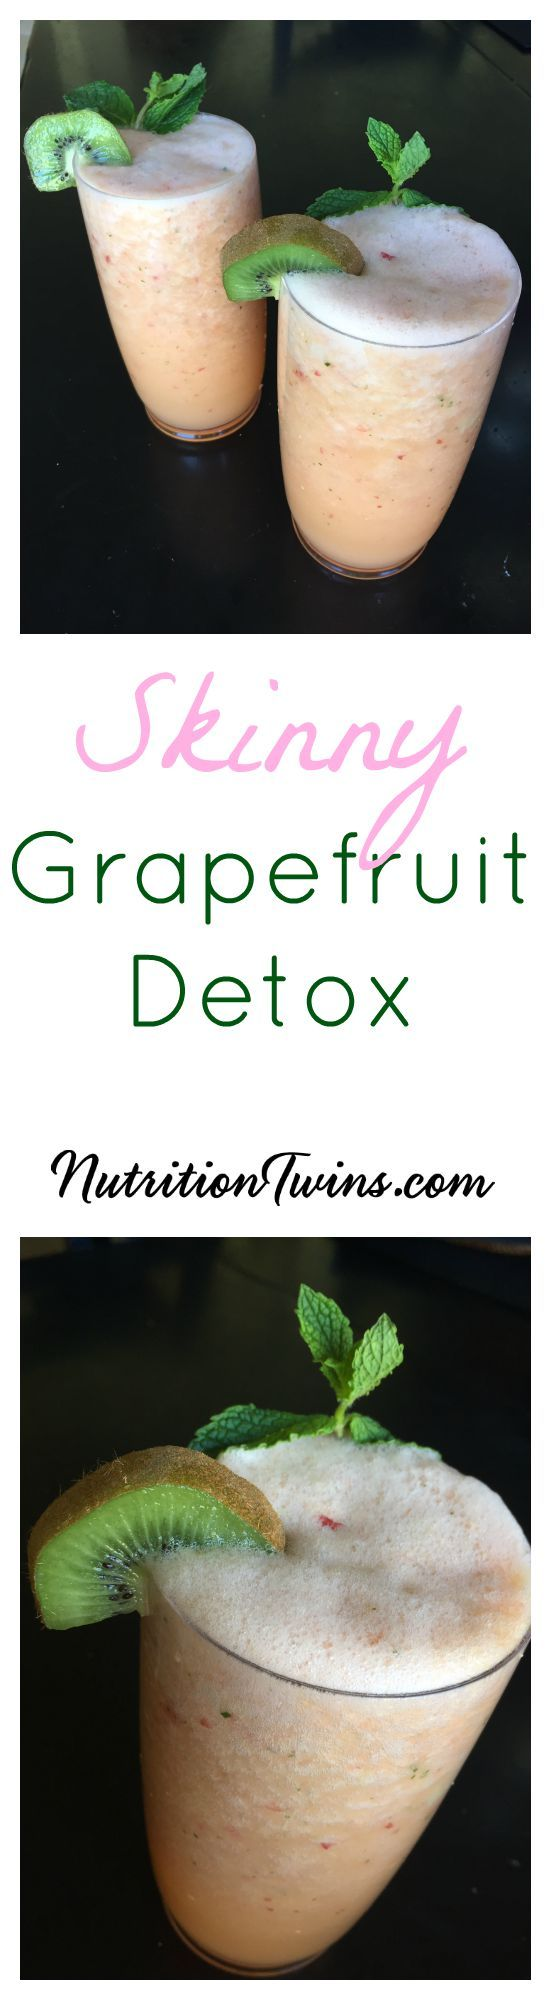 Grapefruit Detox Smoothie | Only 102 Calories | Helps flush bloat |Great for healthy skin, strong immune system |For Nutrition & Fitness Tips & RECIPES, PLEASE sign up for our FREE NEWSLETTER www.NutritionTwins.com